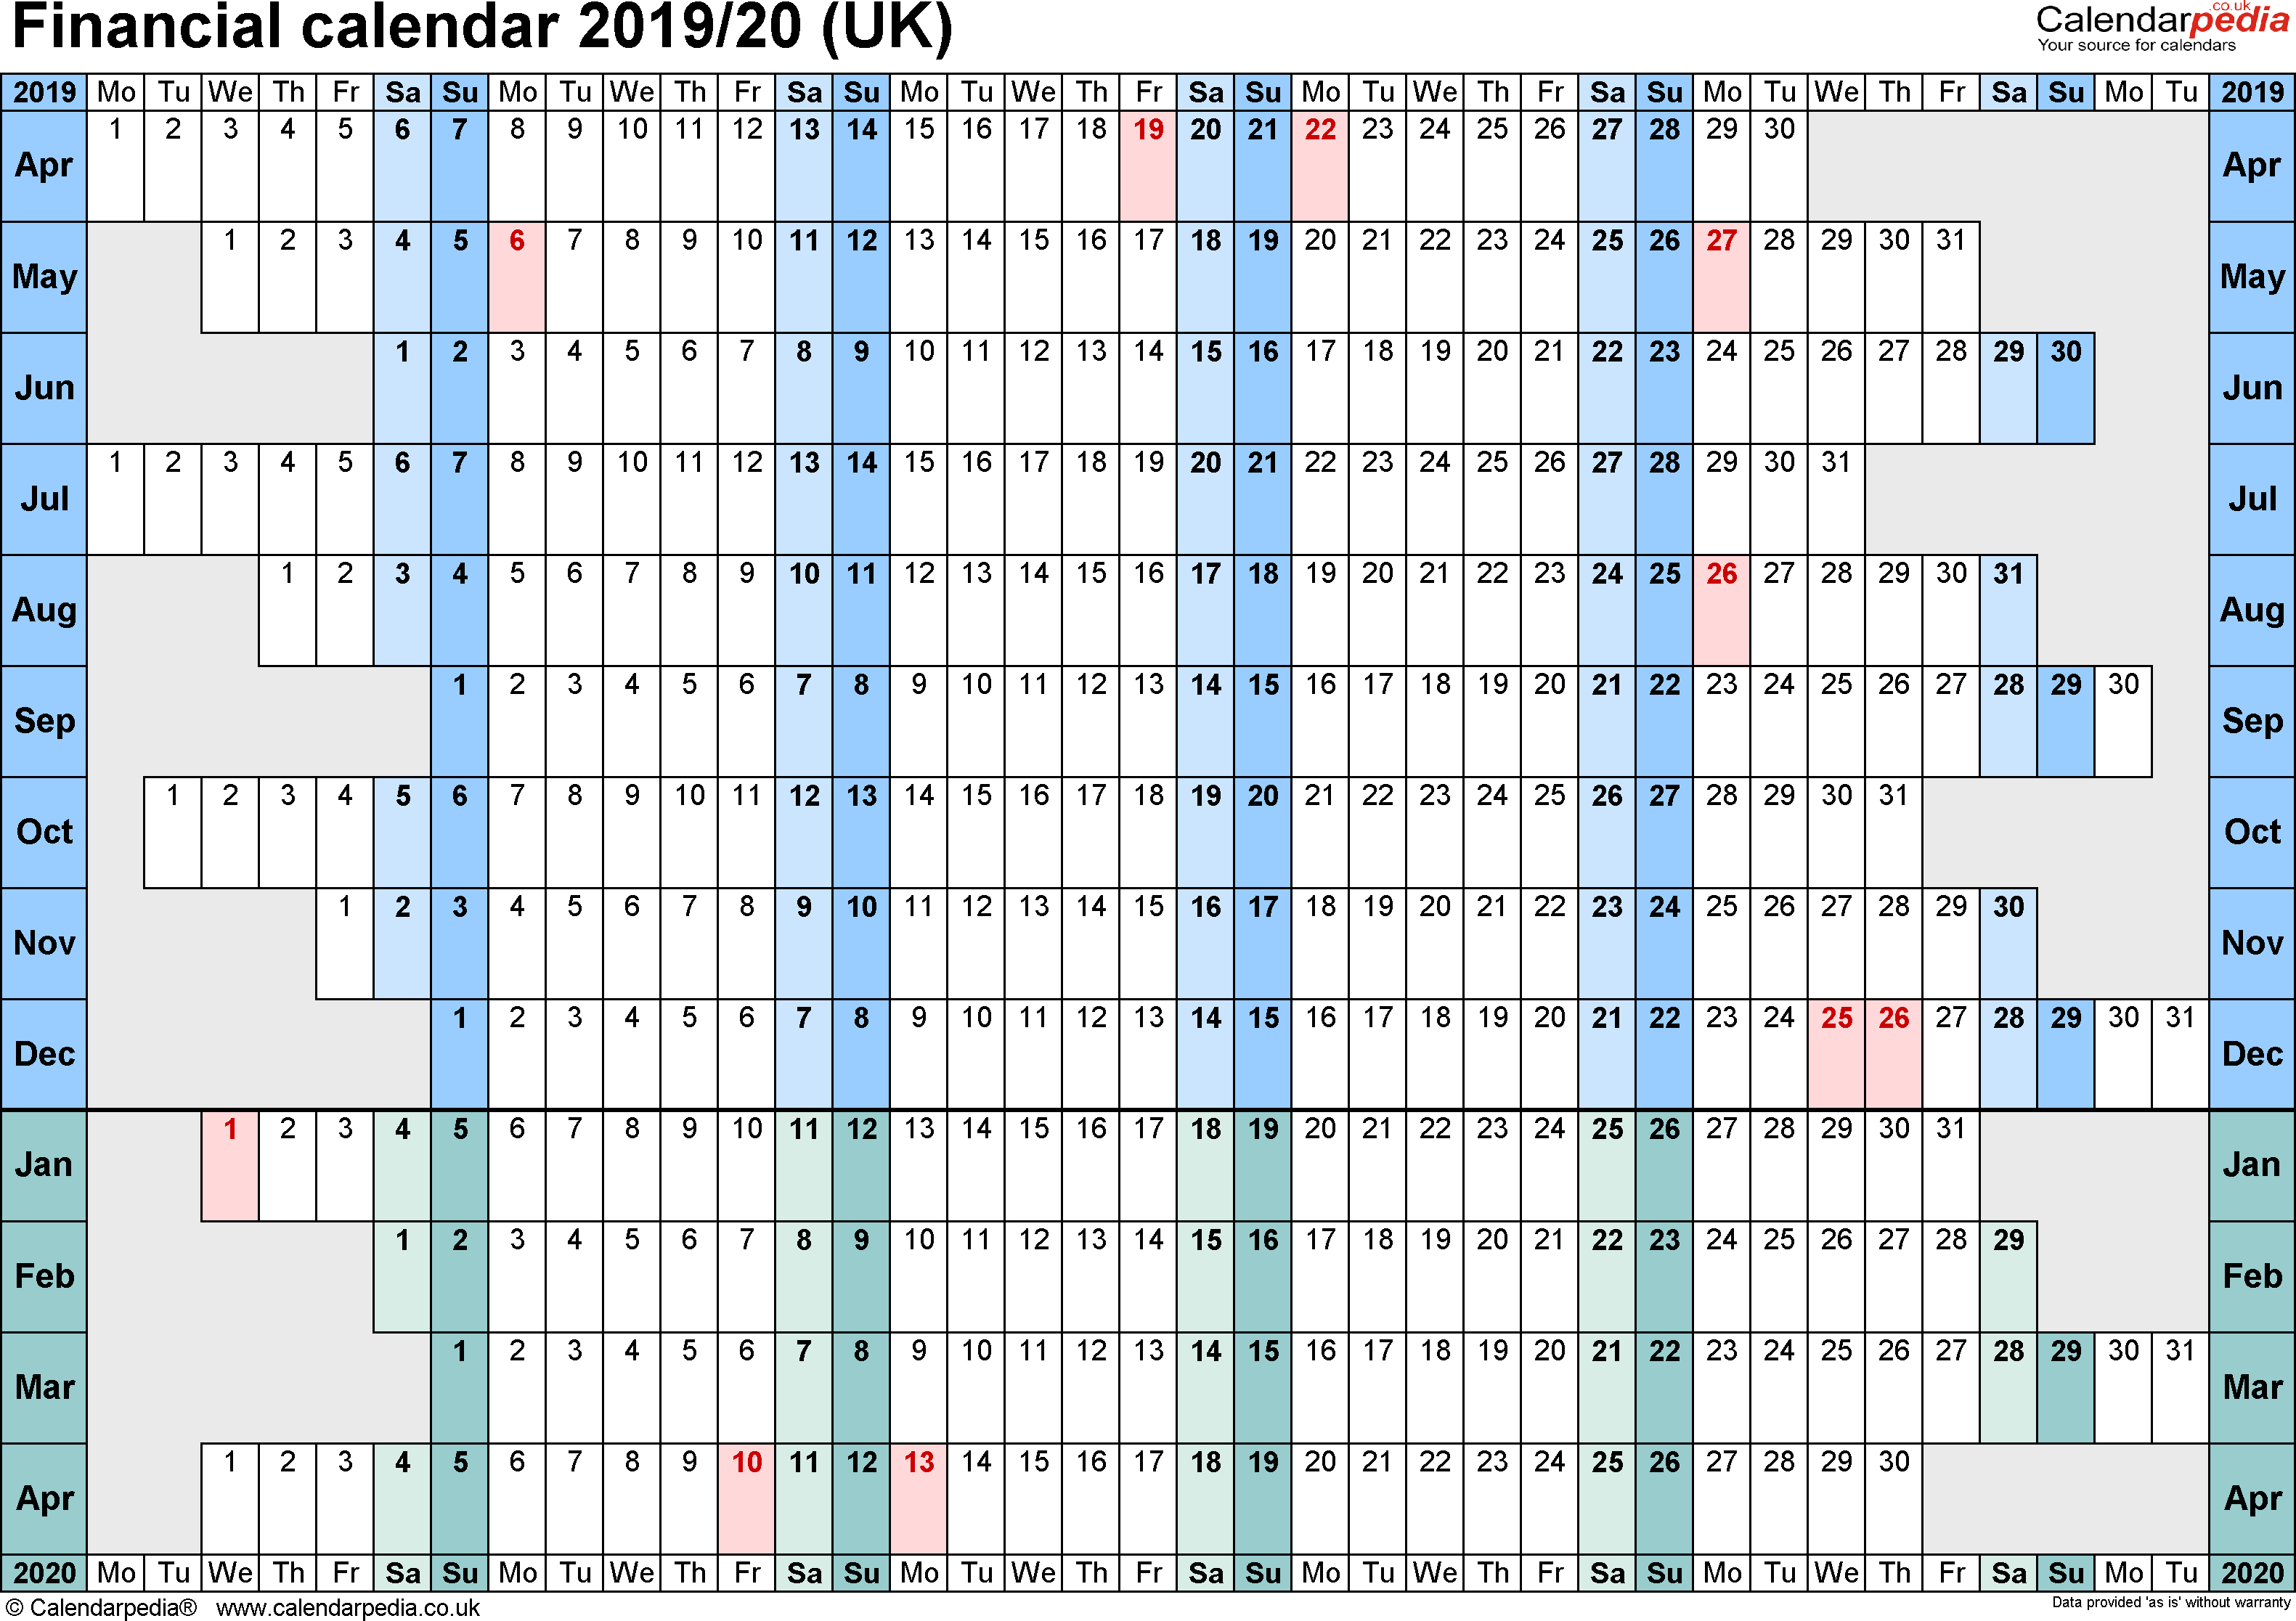 Financial Calendars 2019/20 (Uk) In Pdf Format intended for Financial Calendar 2019/2020 With Week Numbers